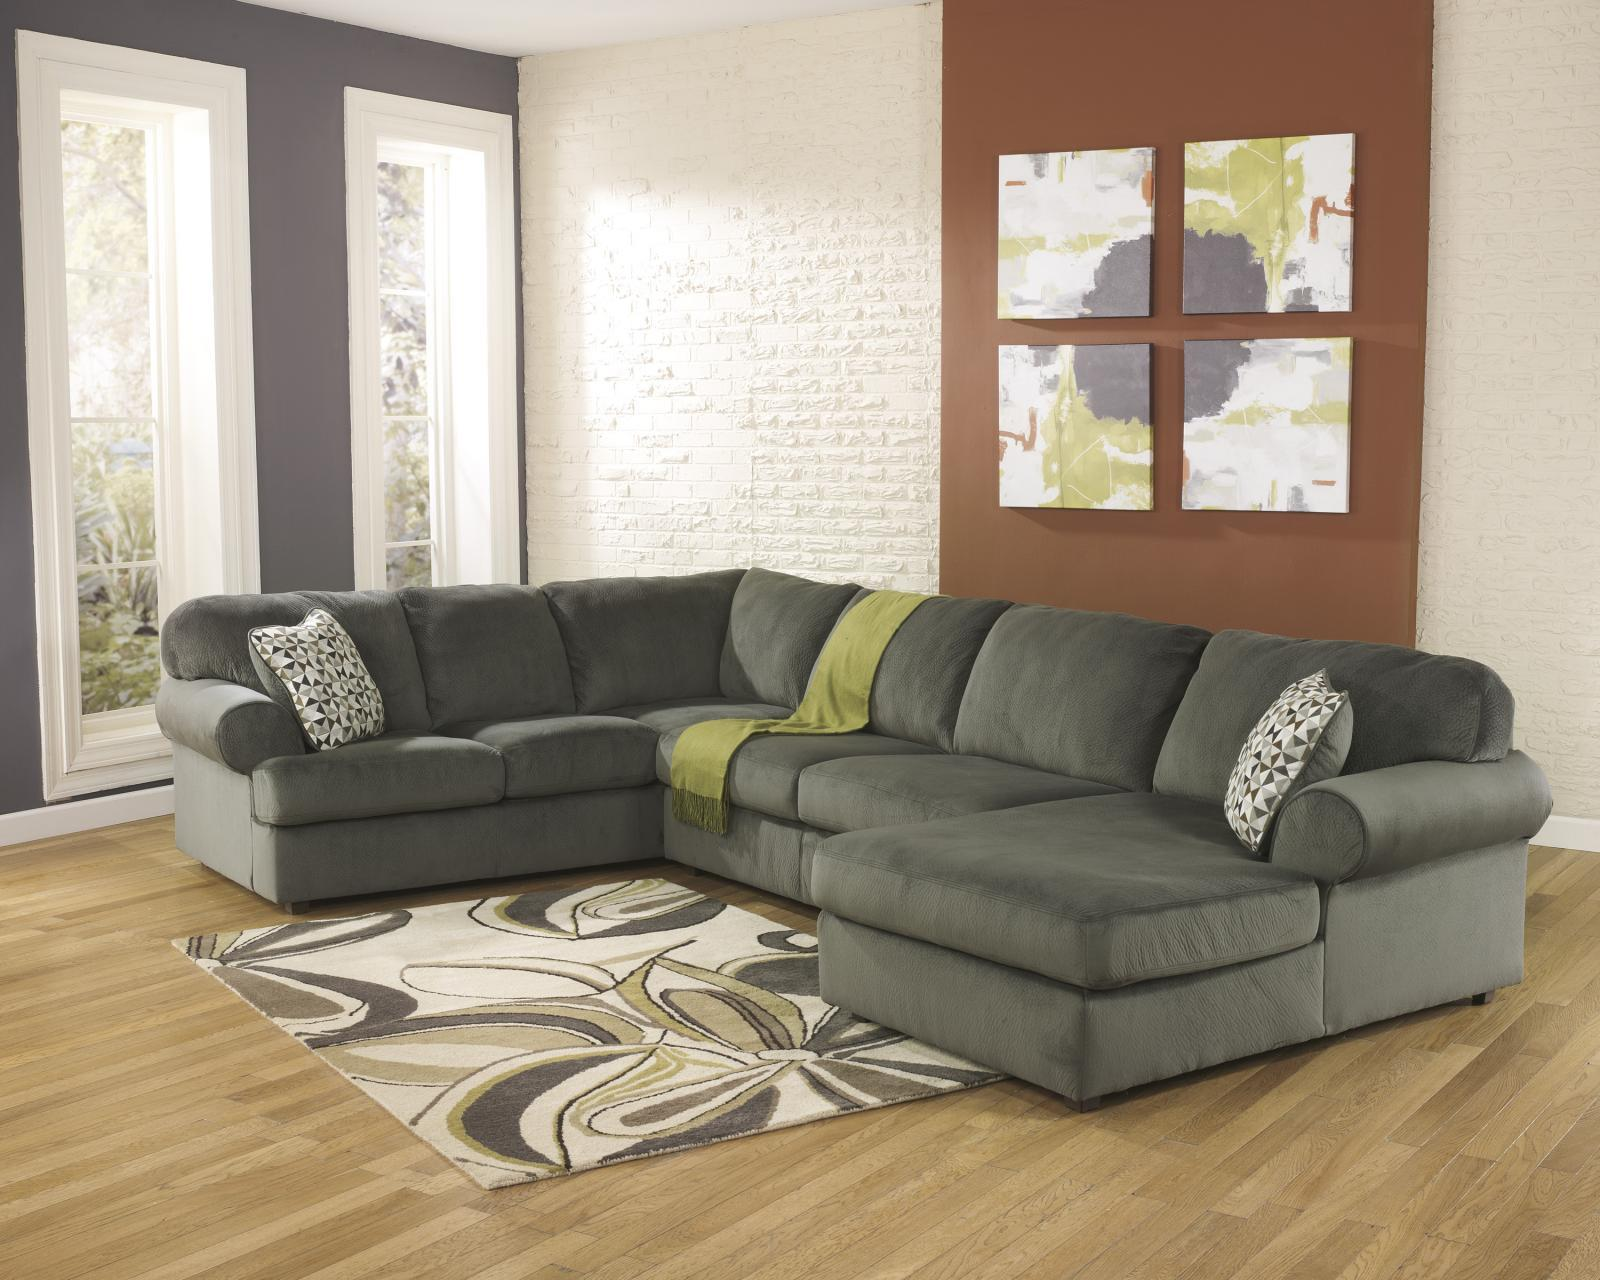 Ashley Jessa Place Living Room Sectional 3pc in Pewter Contemporary Right Facing